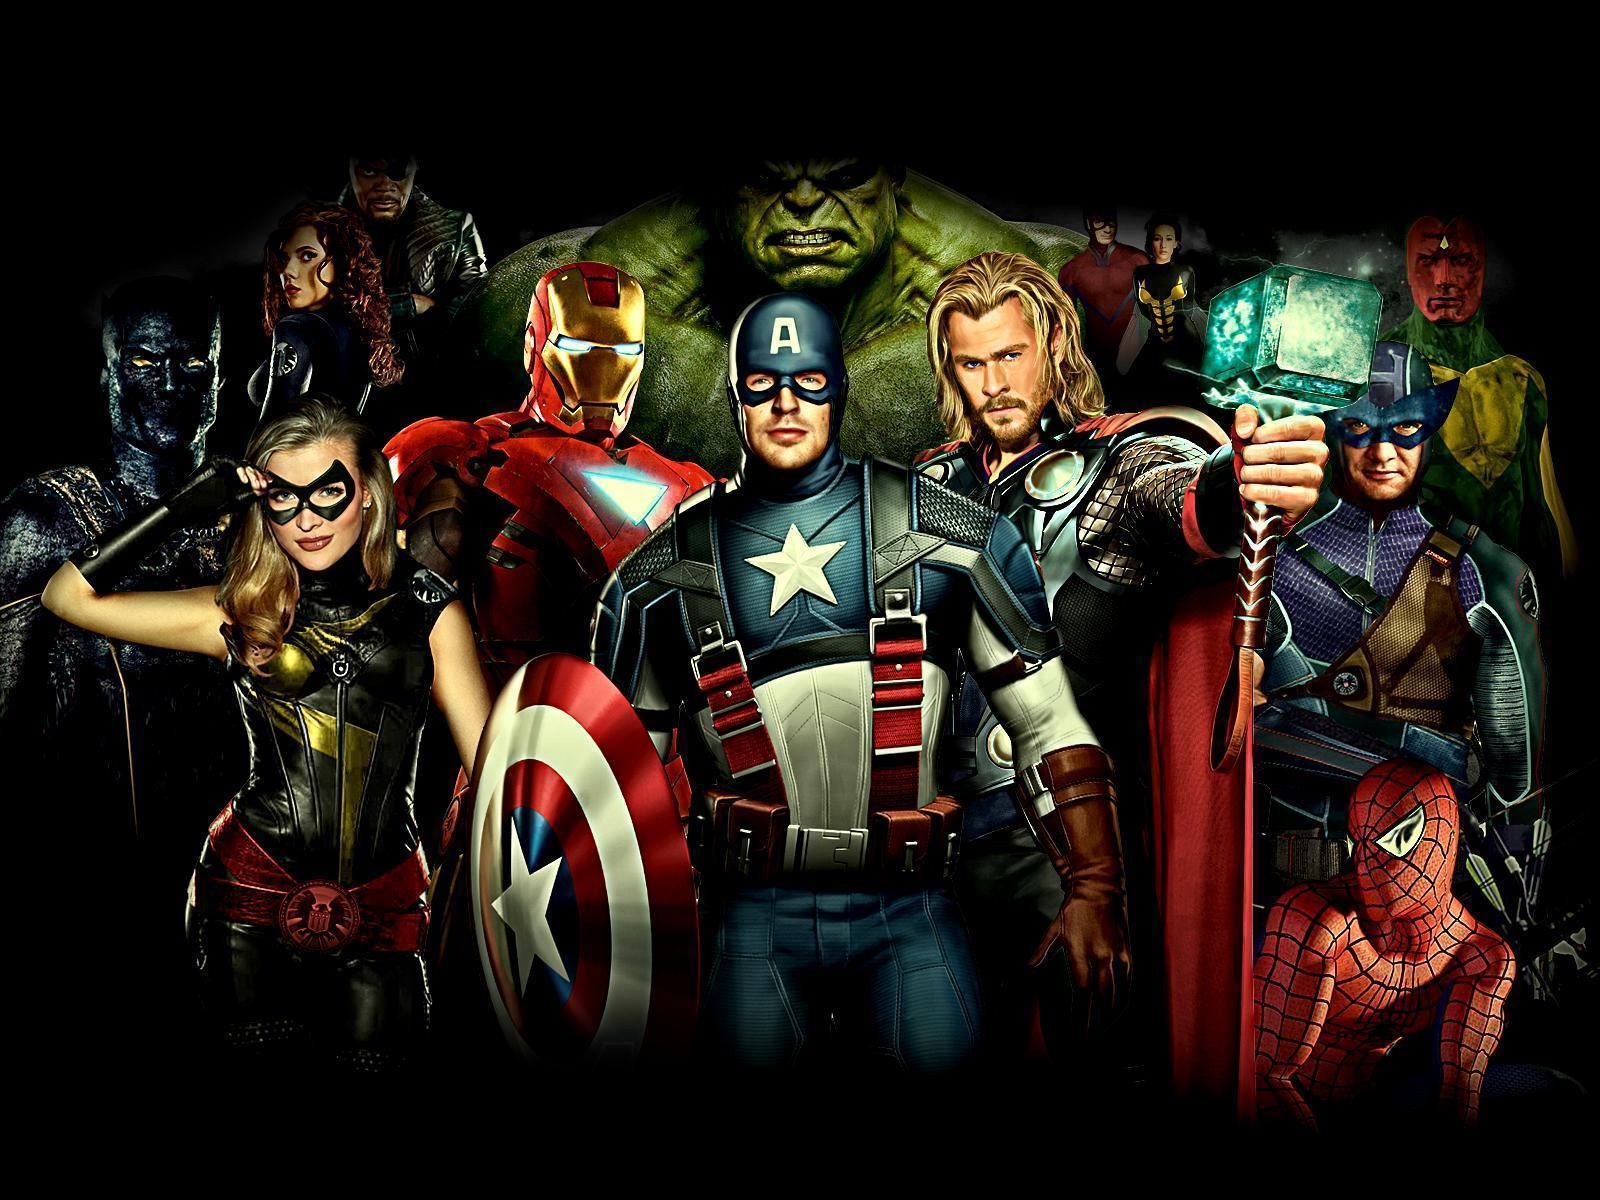 Avengers Wallpapers Hd Wallpaper Cave HD Wallpapers Download Free Images Wallpaper [1000image.com]